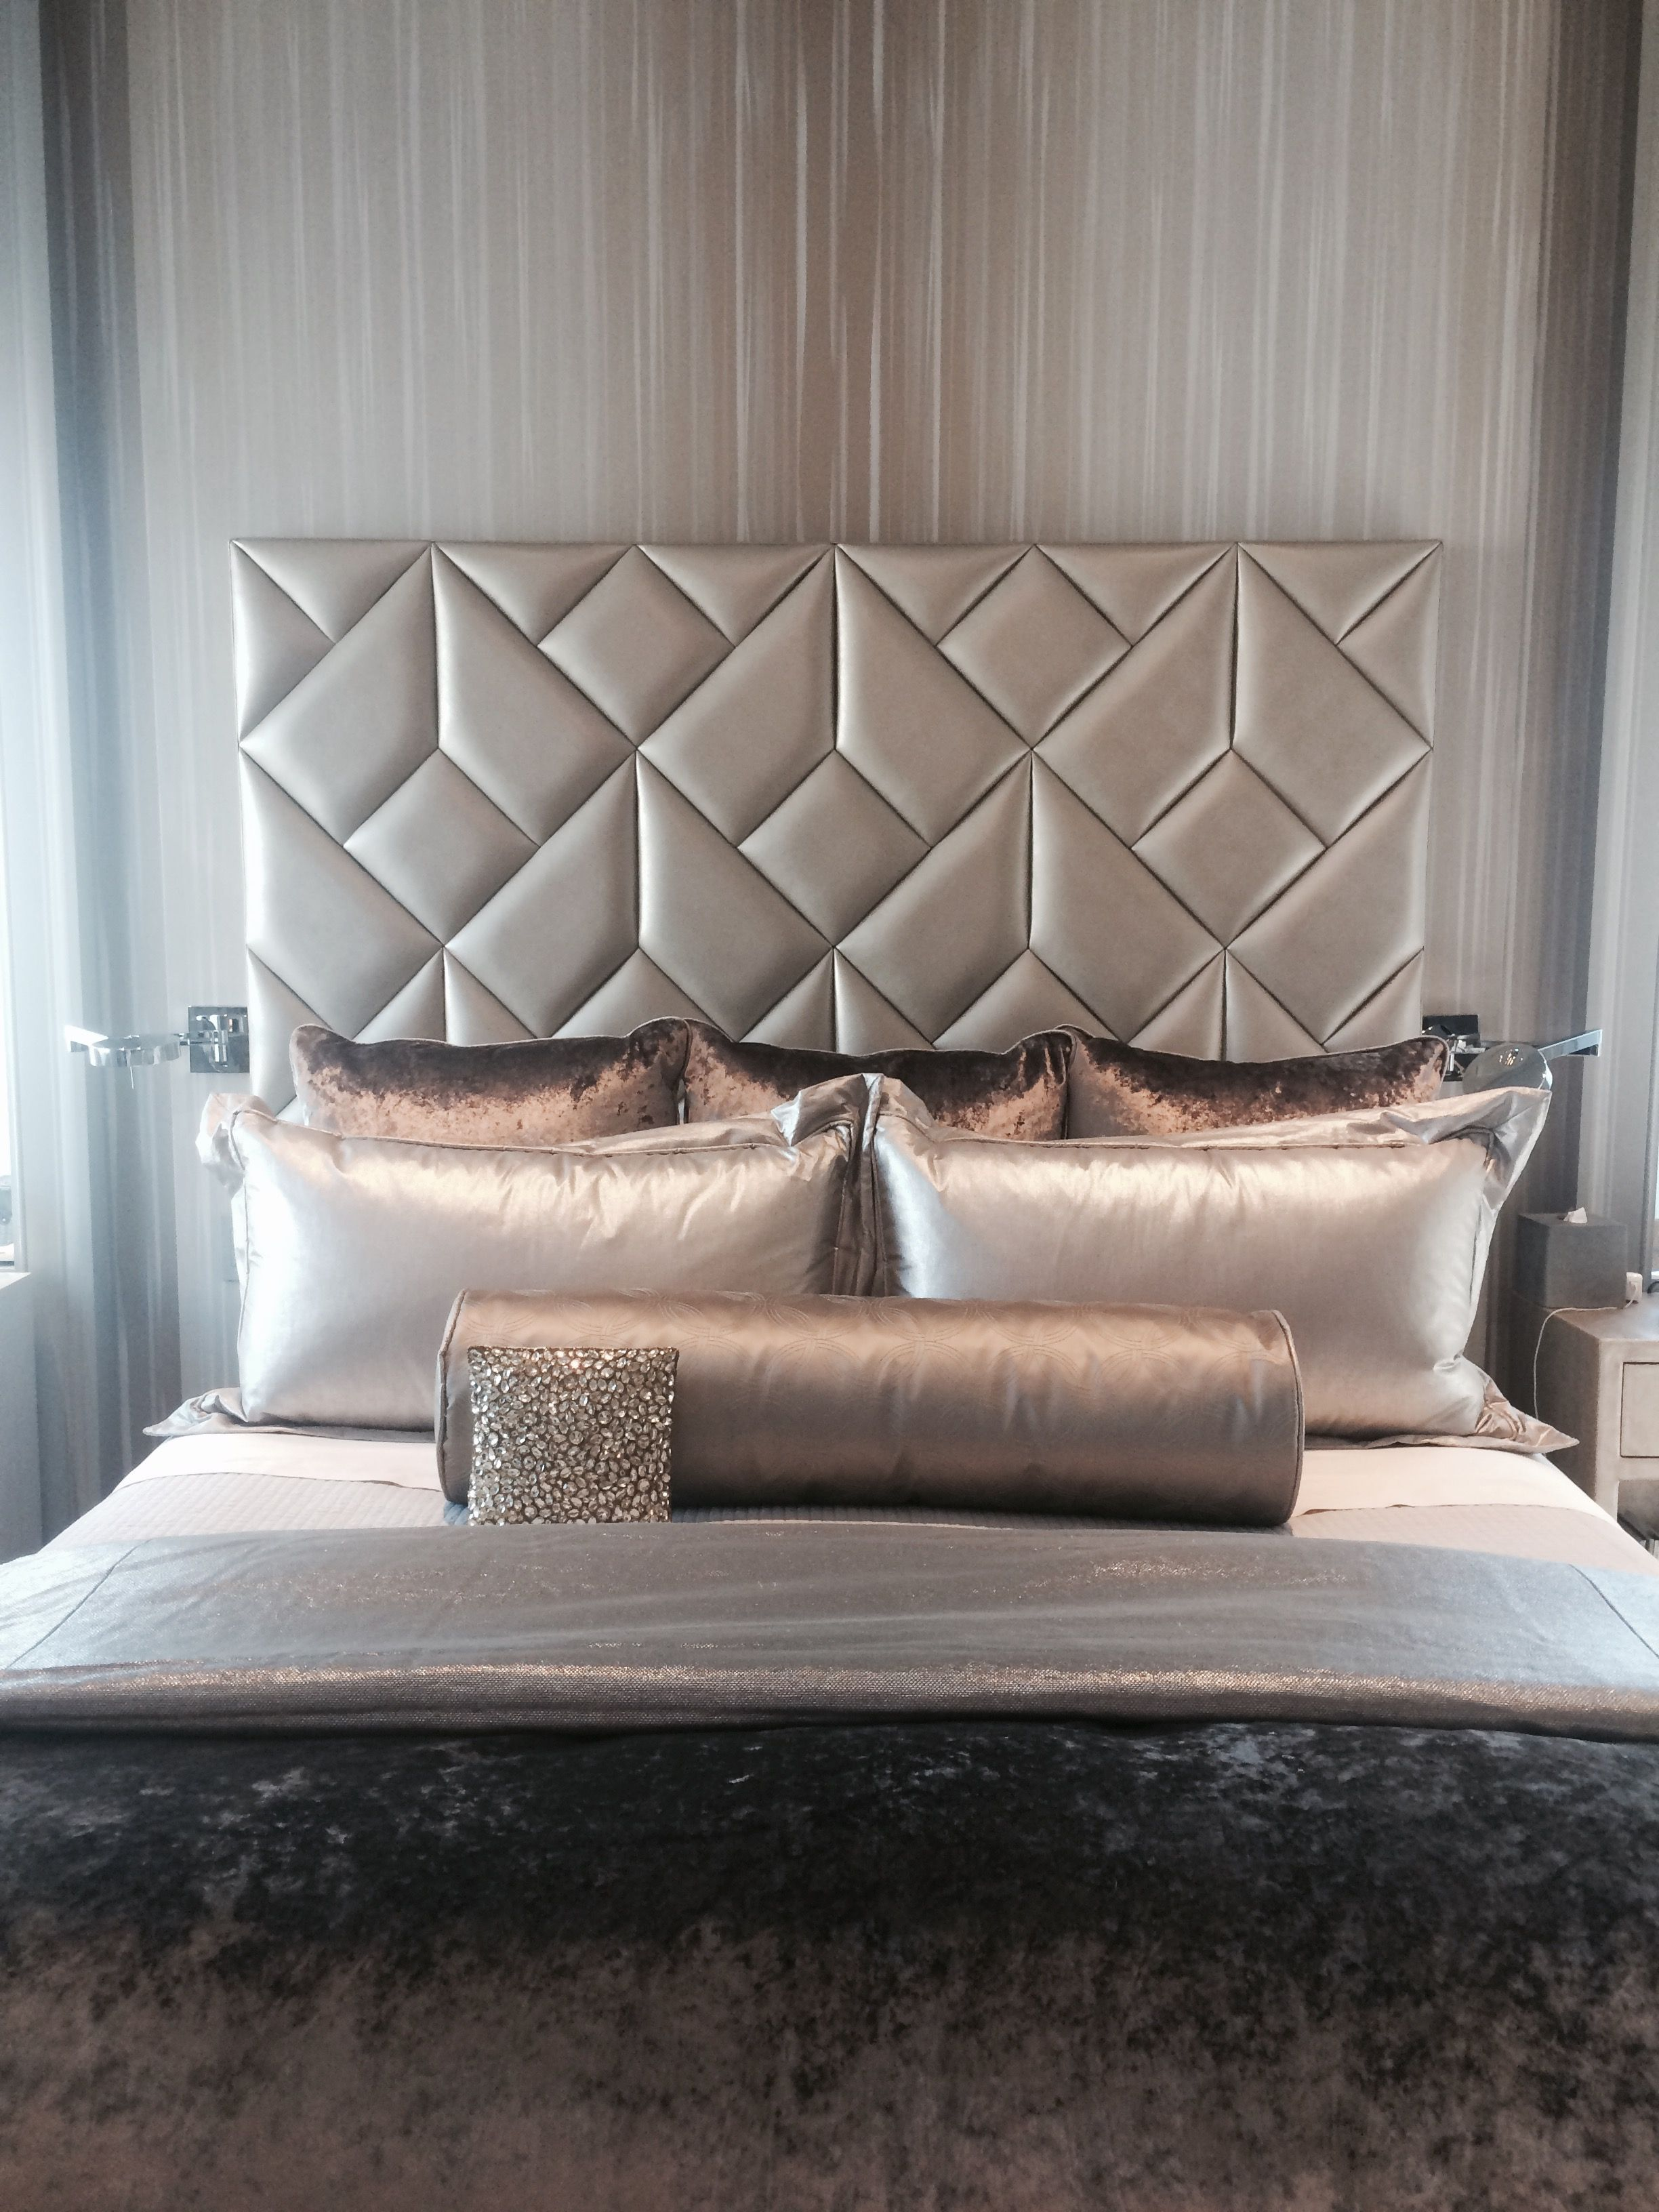 shot 6: master bedroom backdrop | bed headboard design